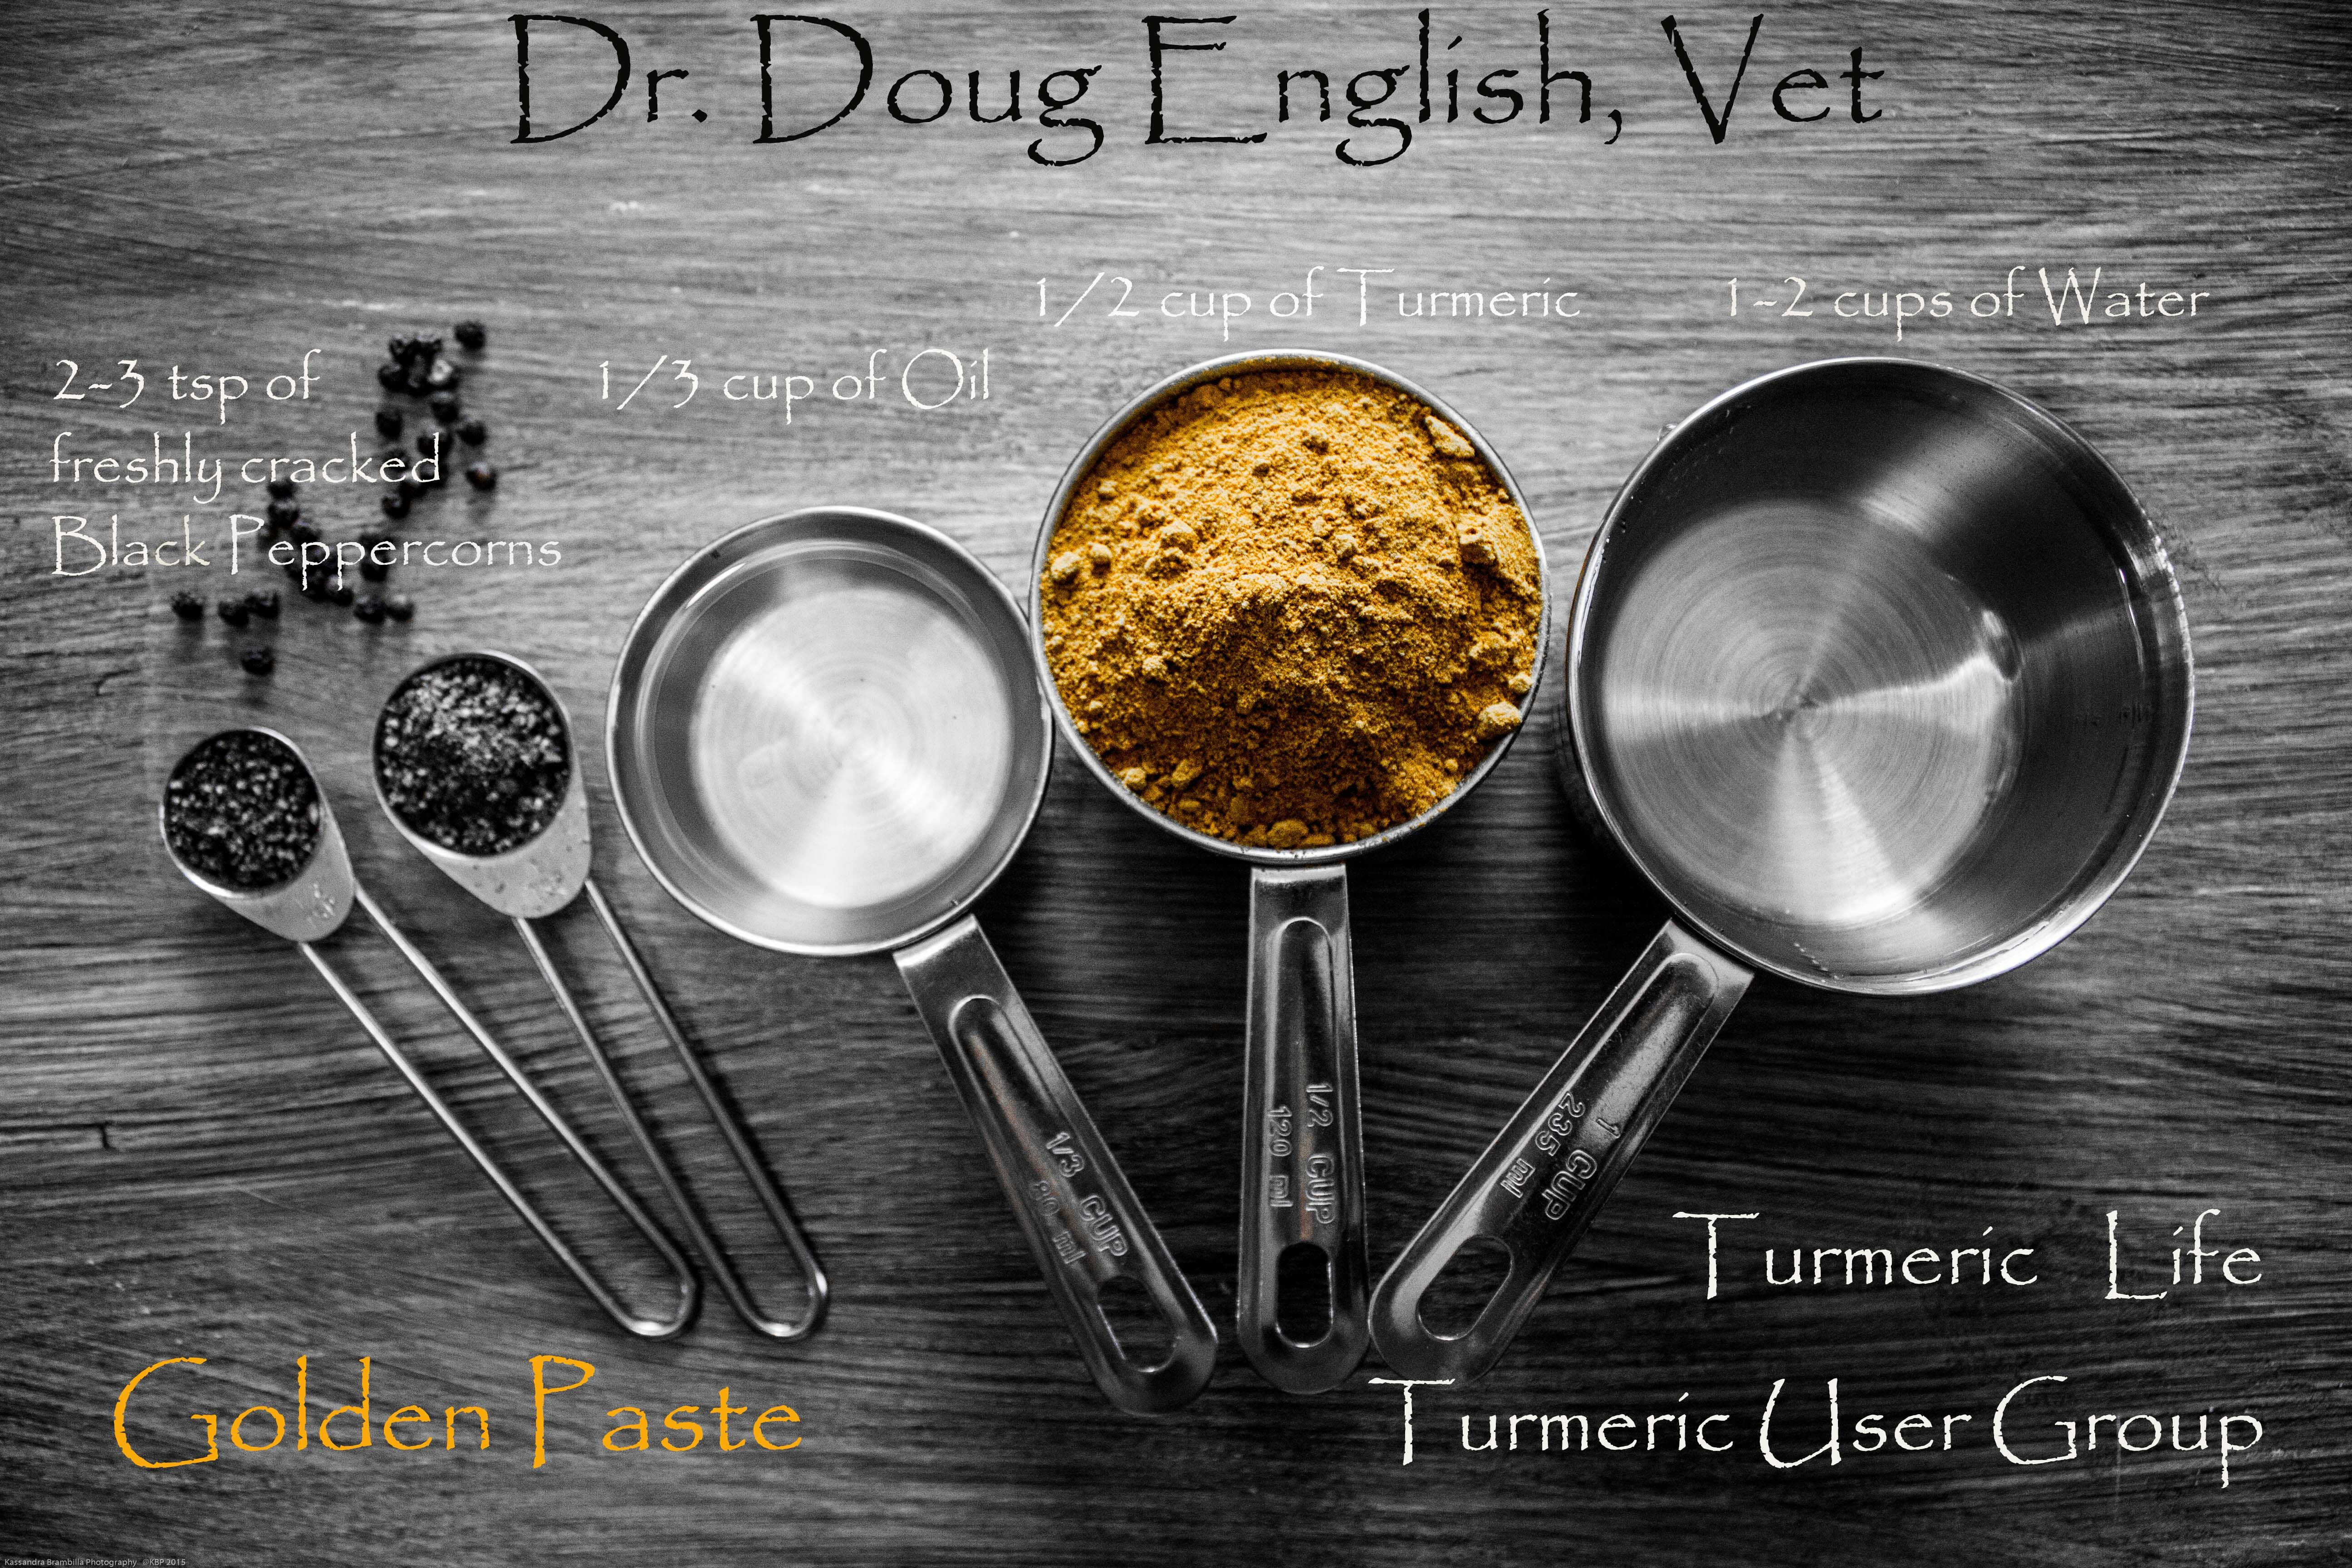 Turmeric golden paste doug english vet veterinarian curcumin coconut turmeric golden paste doug english vet veterinarian curcumin coconut oil health food benefits animals horses dogs cats humans forumfinder Image collections